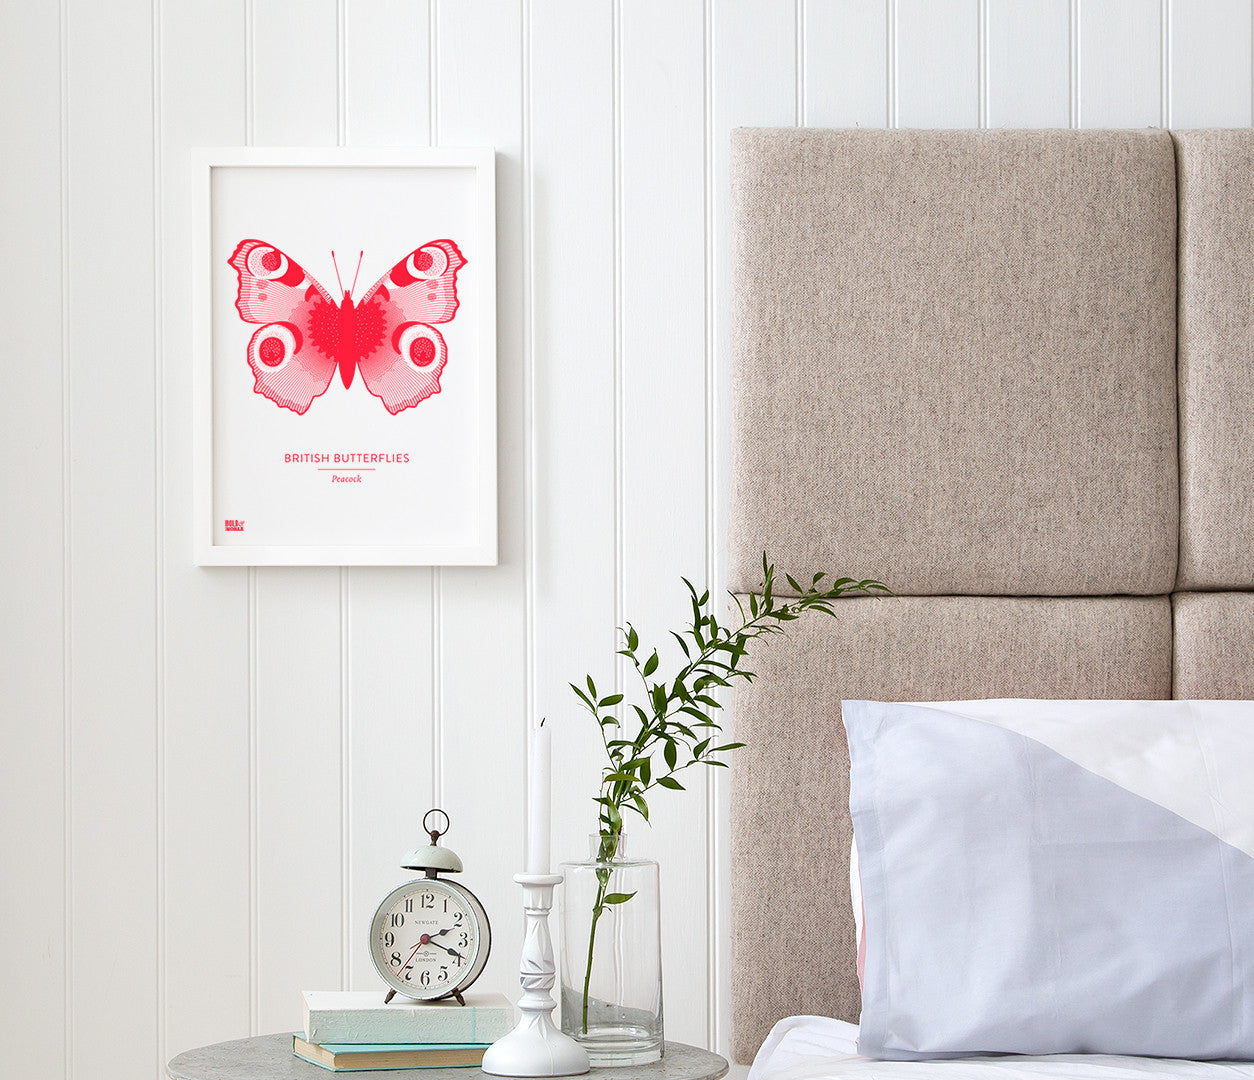 Butterflies Art Print in Neon Pink, Modern Print Designs for the Home